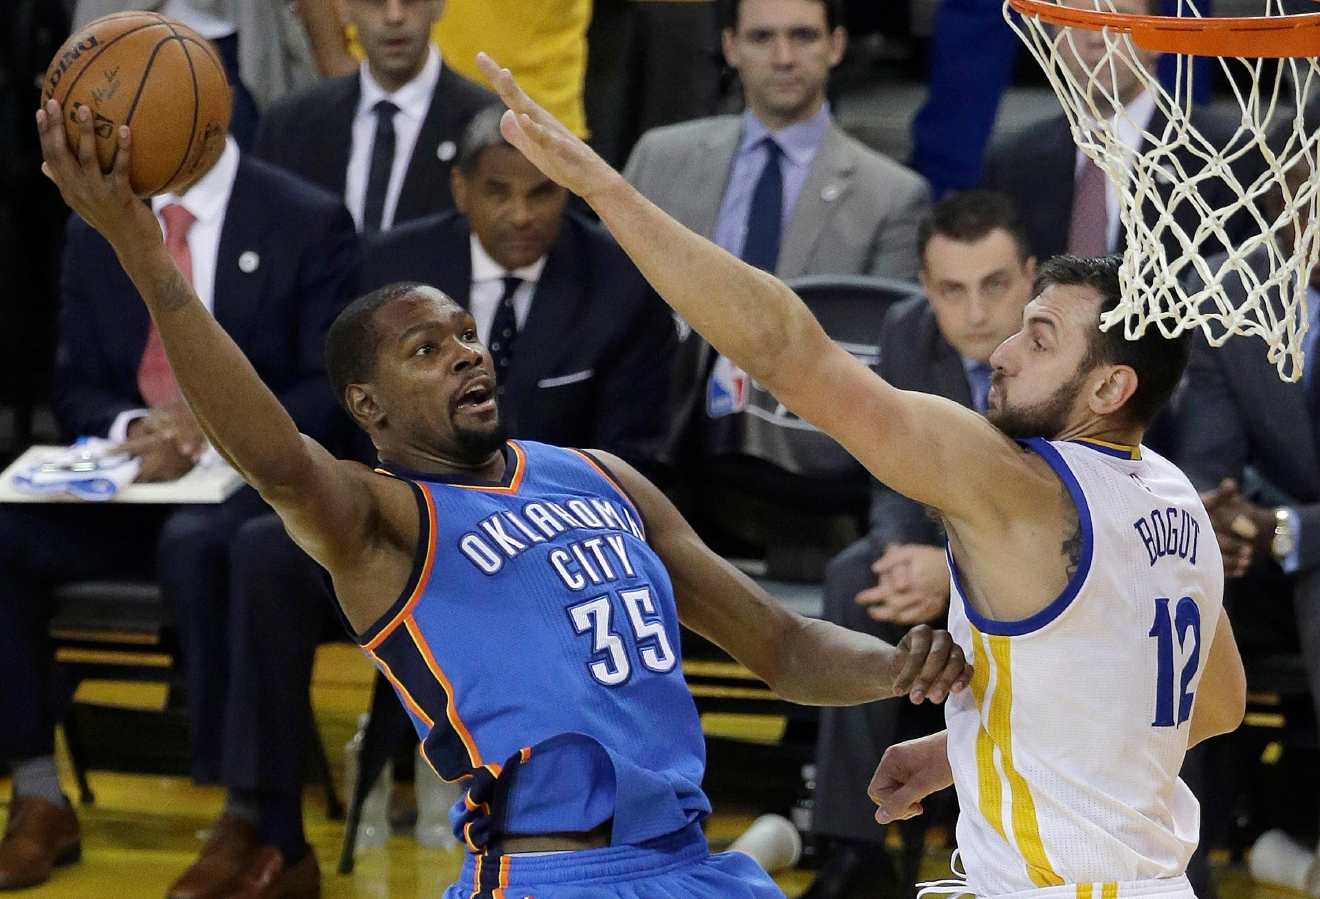 Oklahoma City Thunder forward Kevin Durant (35) shoots against Golden State Warriors center Andrew Bogut (12) during the first half of Game 5 of the NBA basketball Western Conference finals in Oakland, Calif., Thursday, May 26, 2016. (AP Photo/Jeff Chiu)